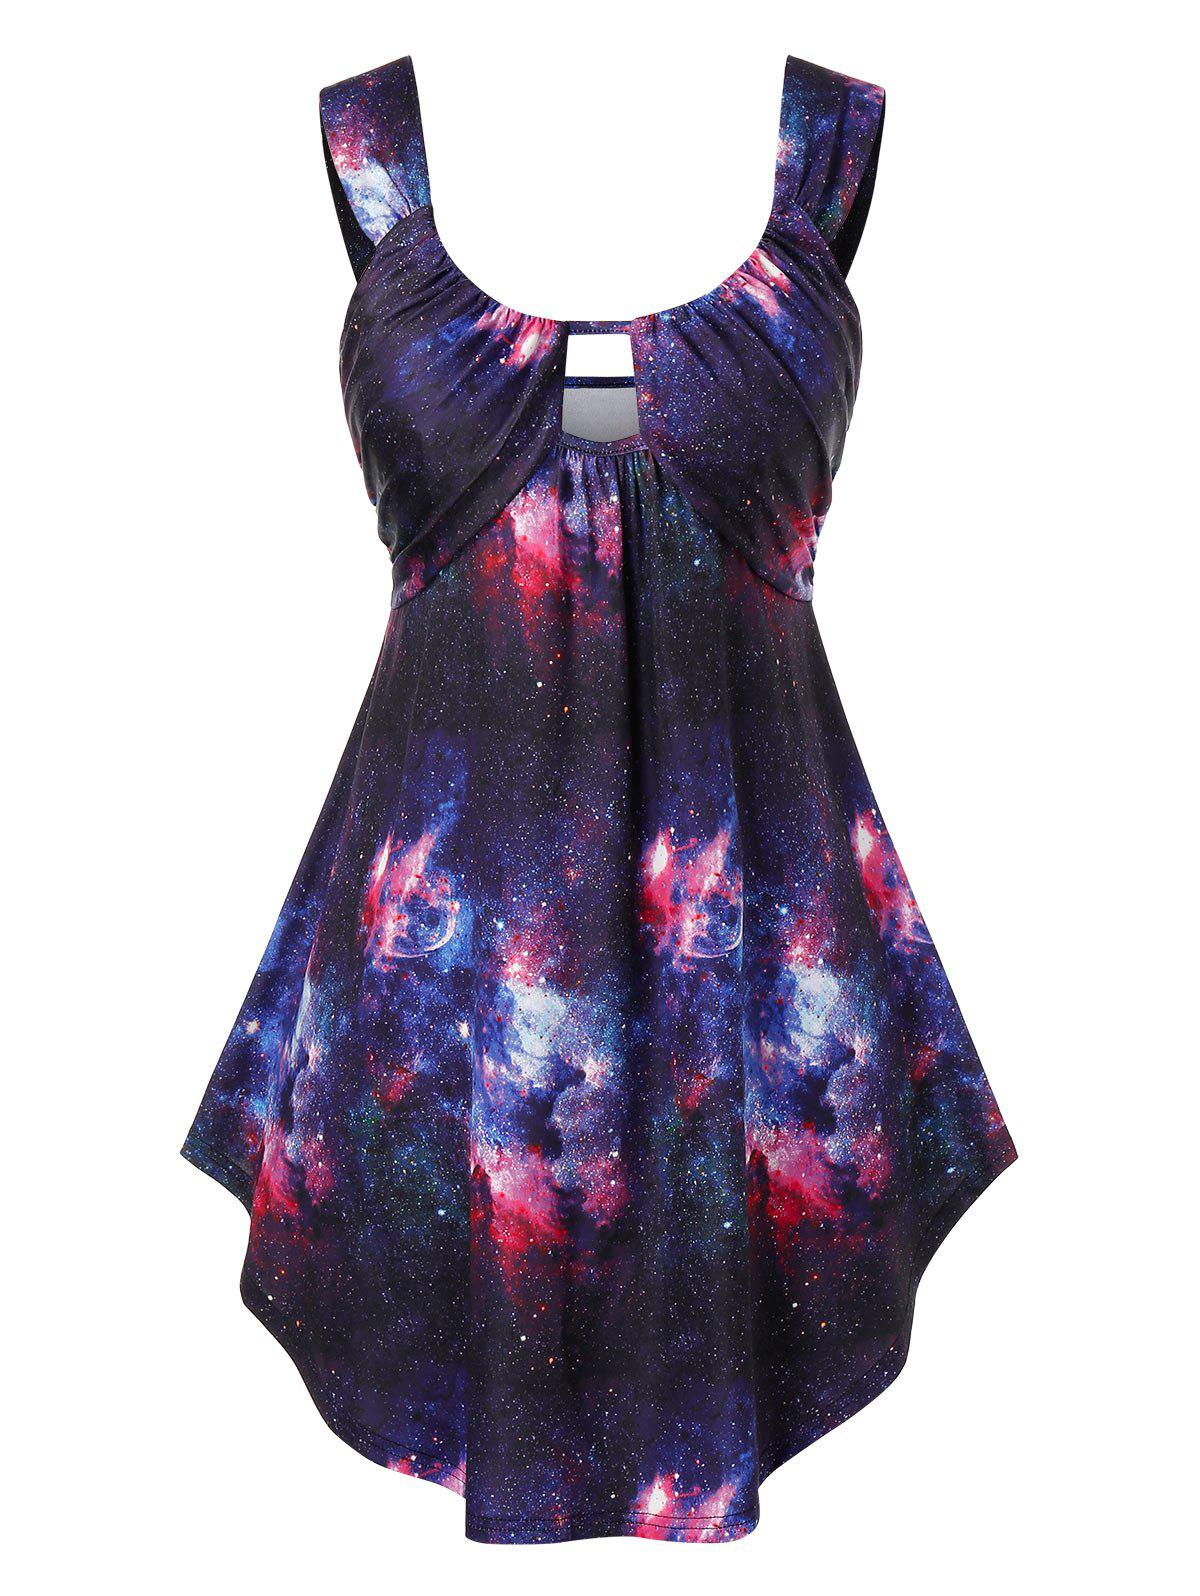 Plus Size 3D Galaxy Print Curved Tank Top - multicolor 2X